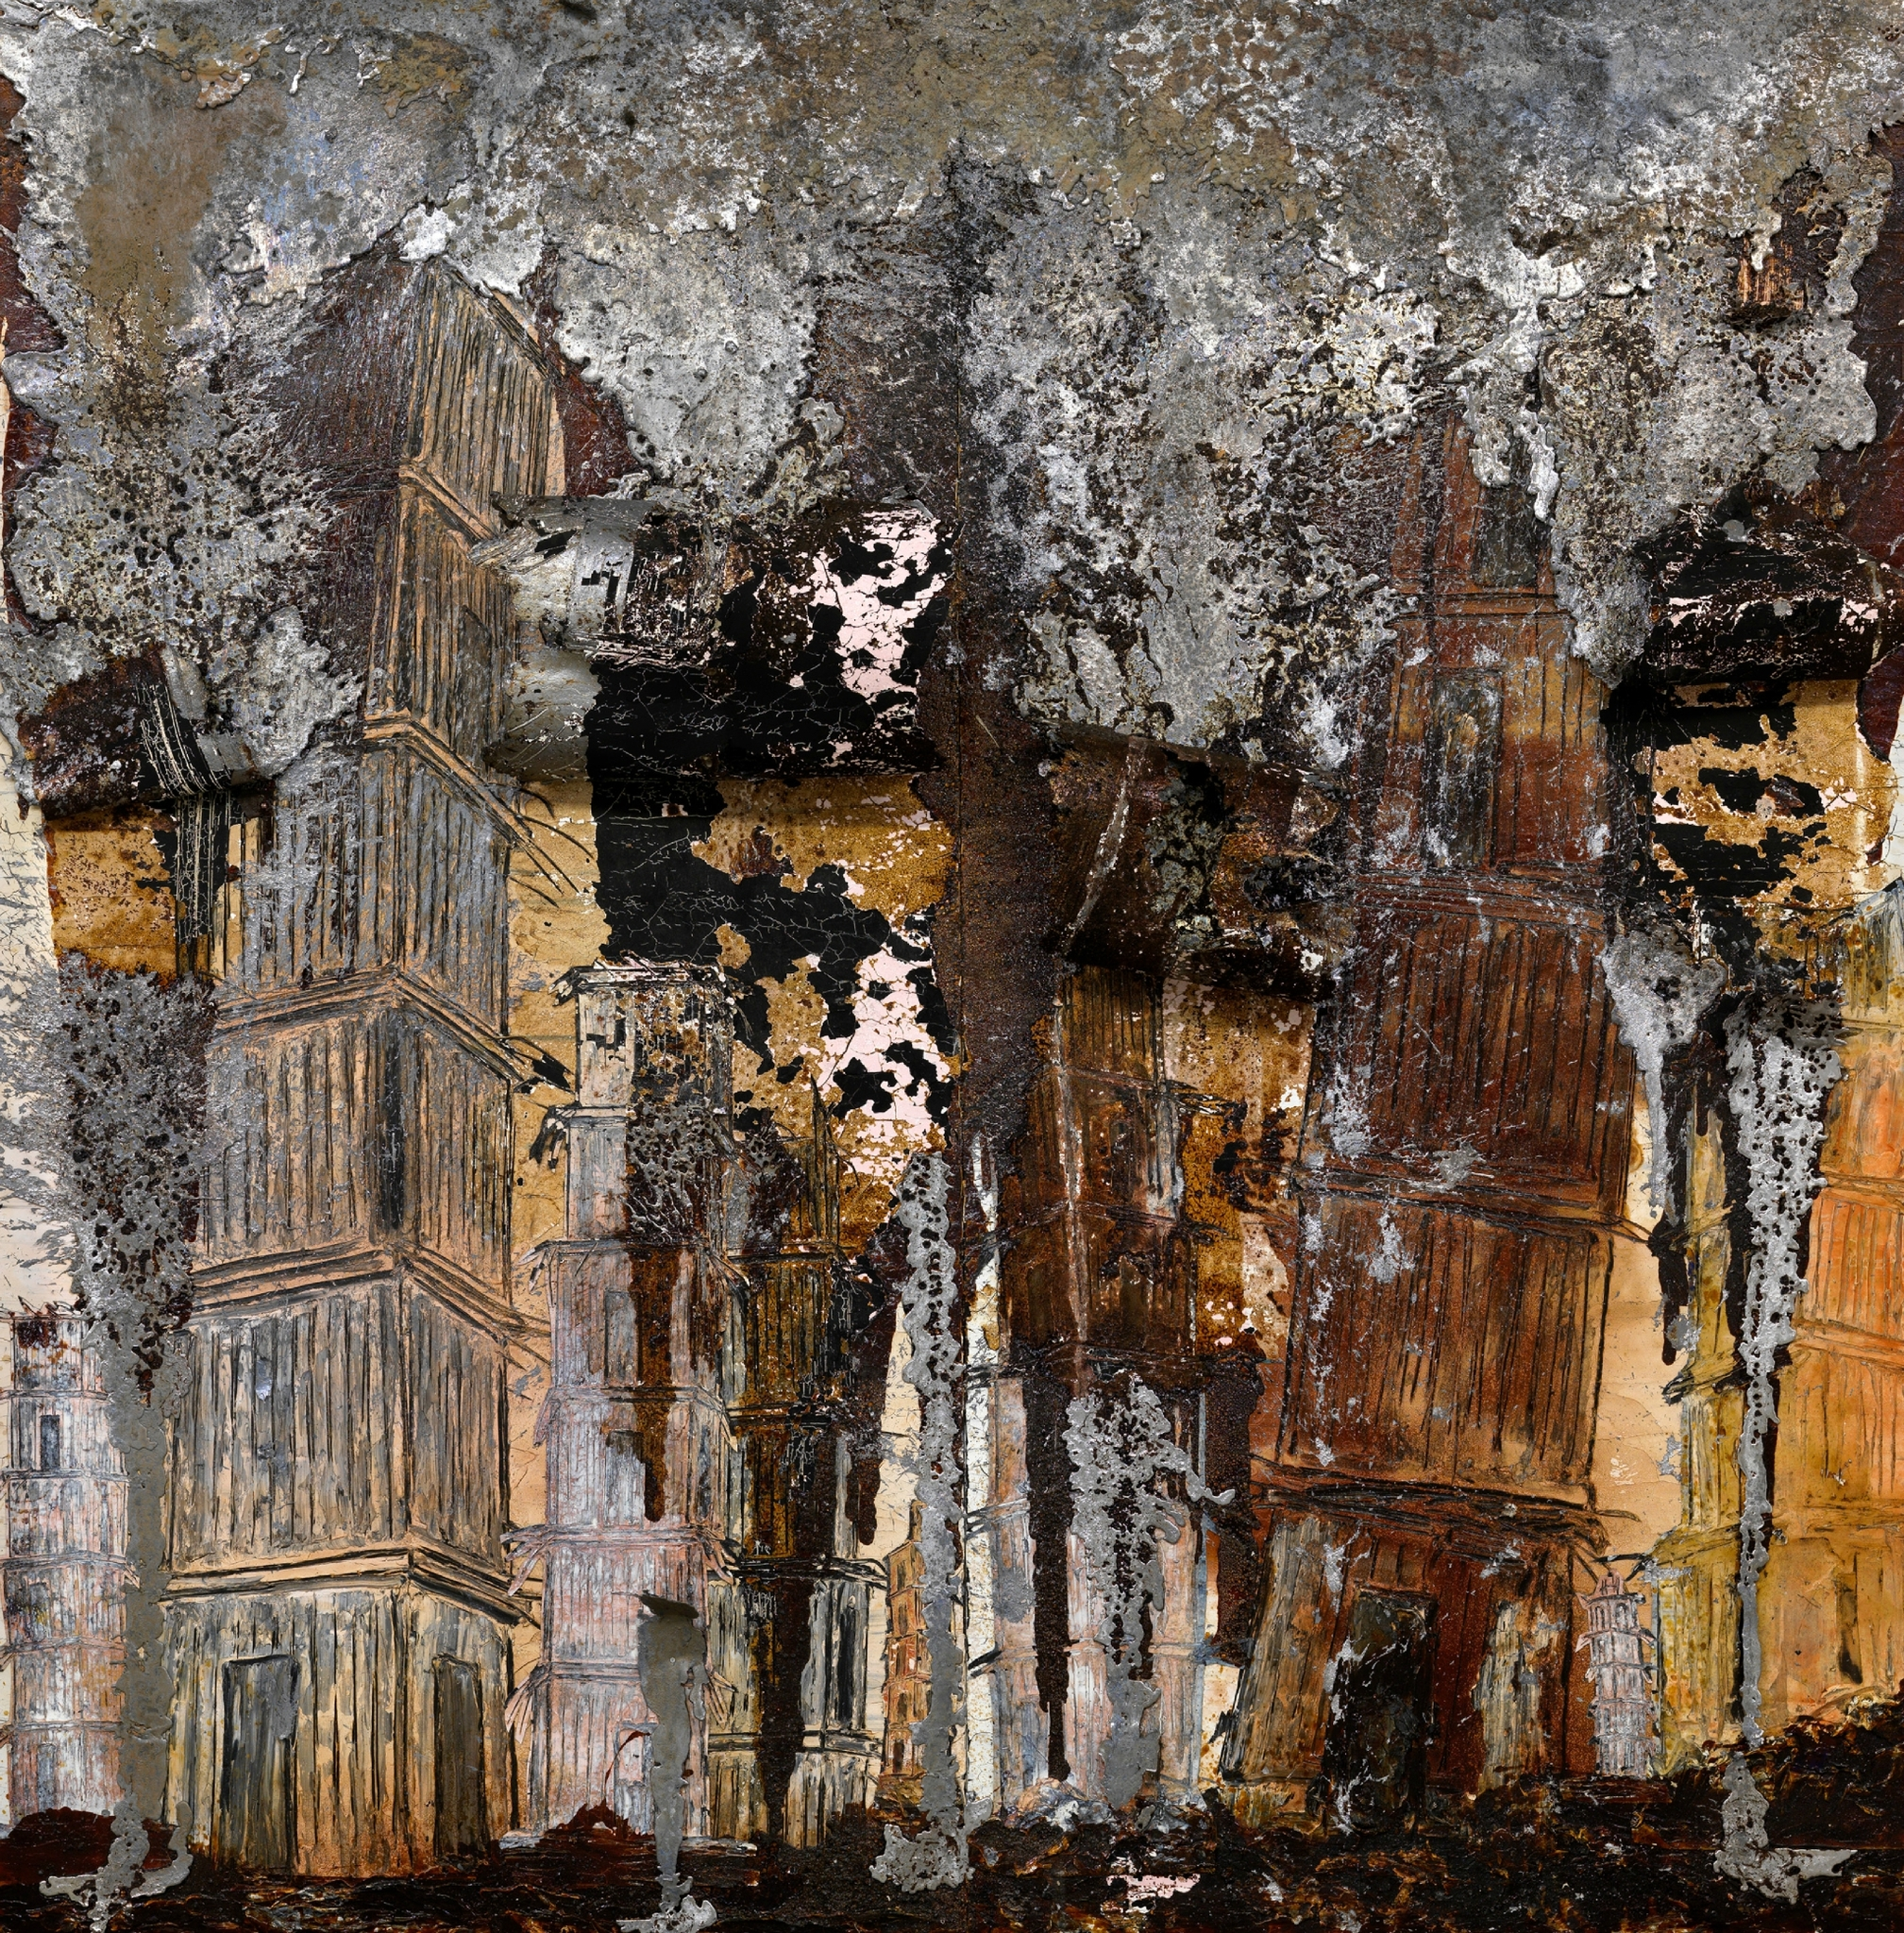 Barnes Foundation is sole U.S. venue for major exhibition exploring works of Anselm Kiefer and Auguste Rodin